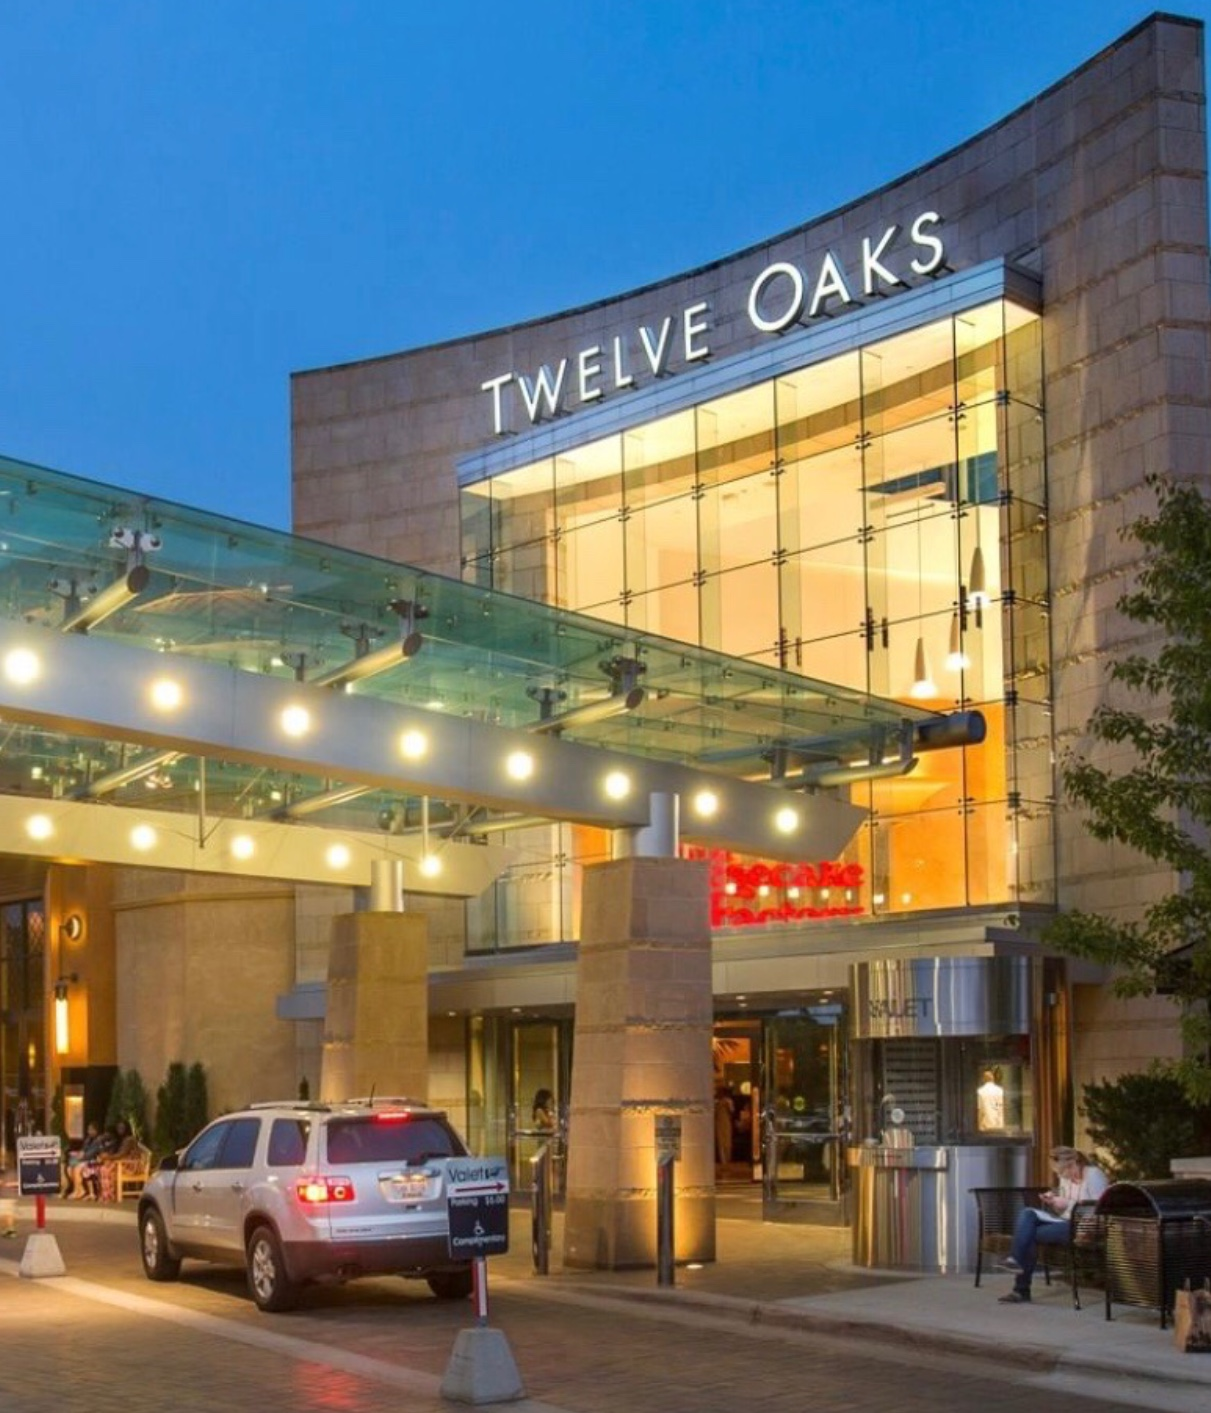 Twelve Oaks Mall in Novi is a popular mall many shoppers rush to on Black Friday for the excellent deals. The mall allows people to shop from 6 p.m. until midnight on Thanksgiving and re-opens at 7 a.m. on Black Friday.  Fair use: Instagram